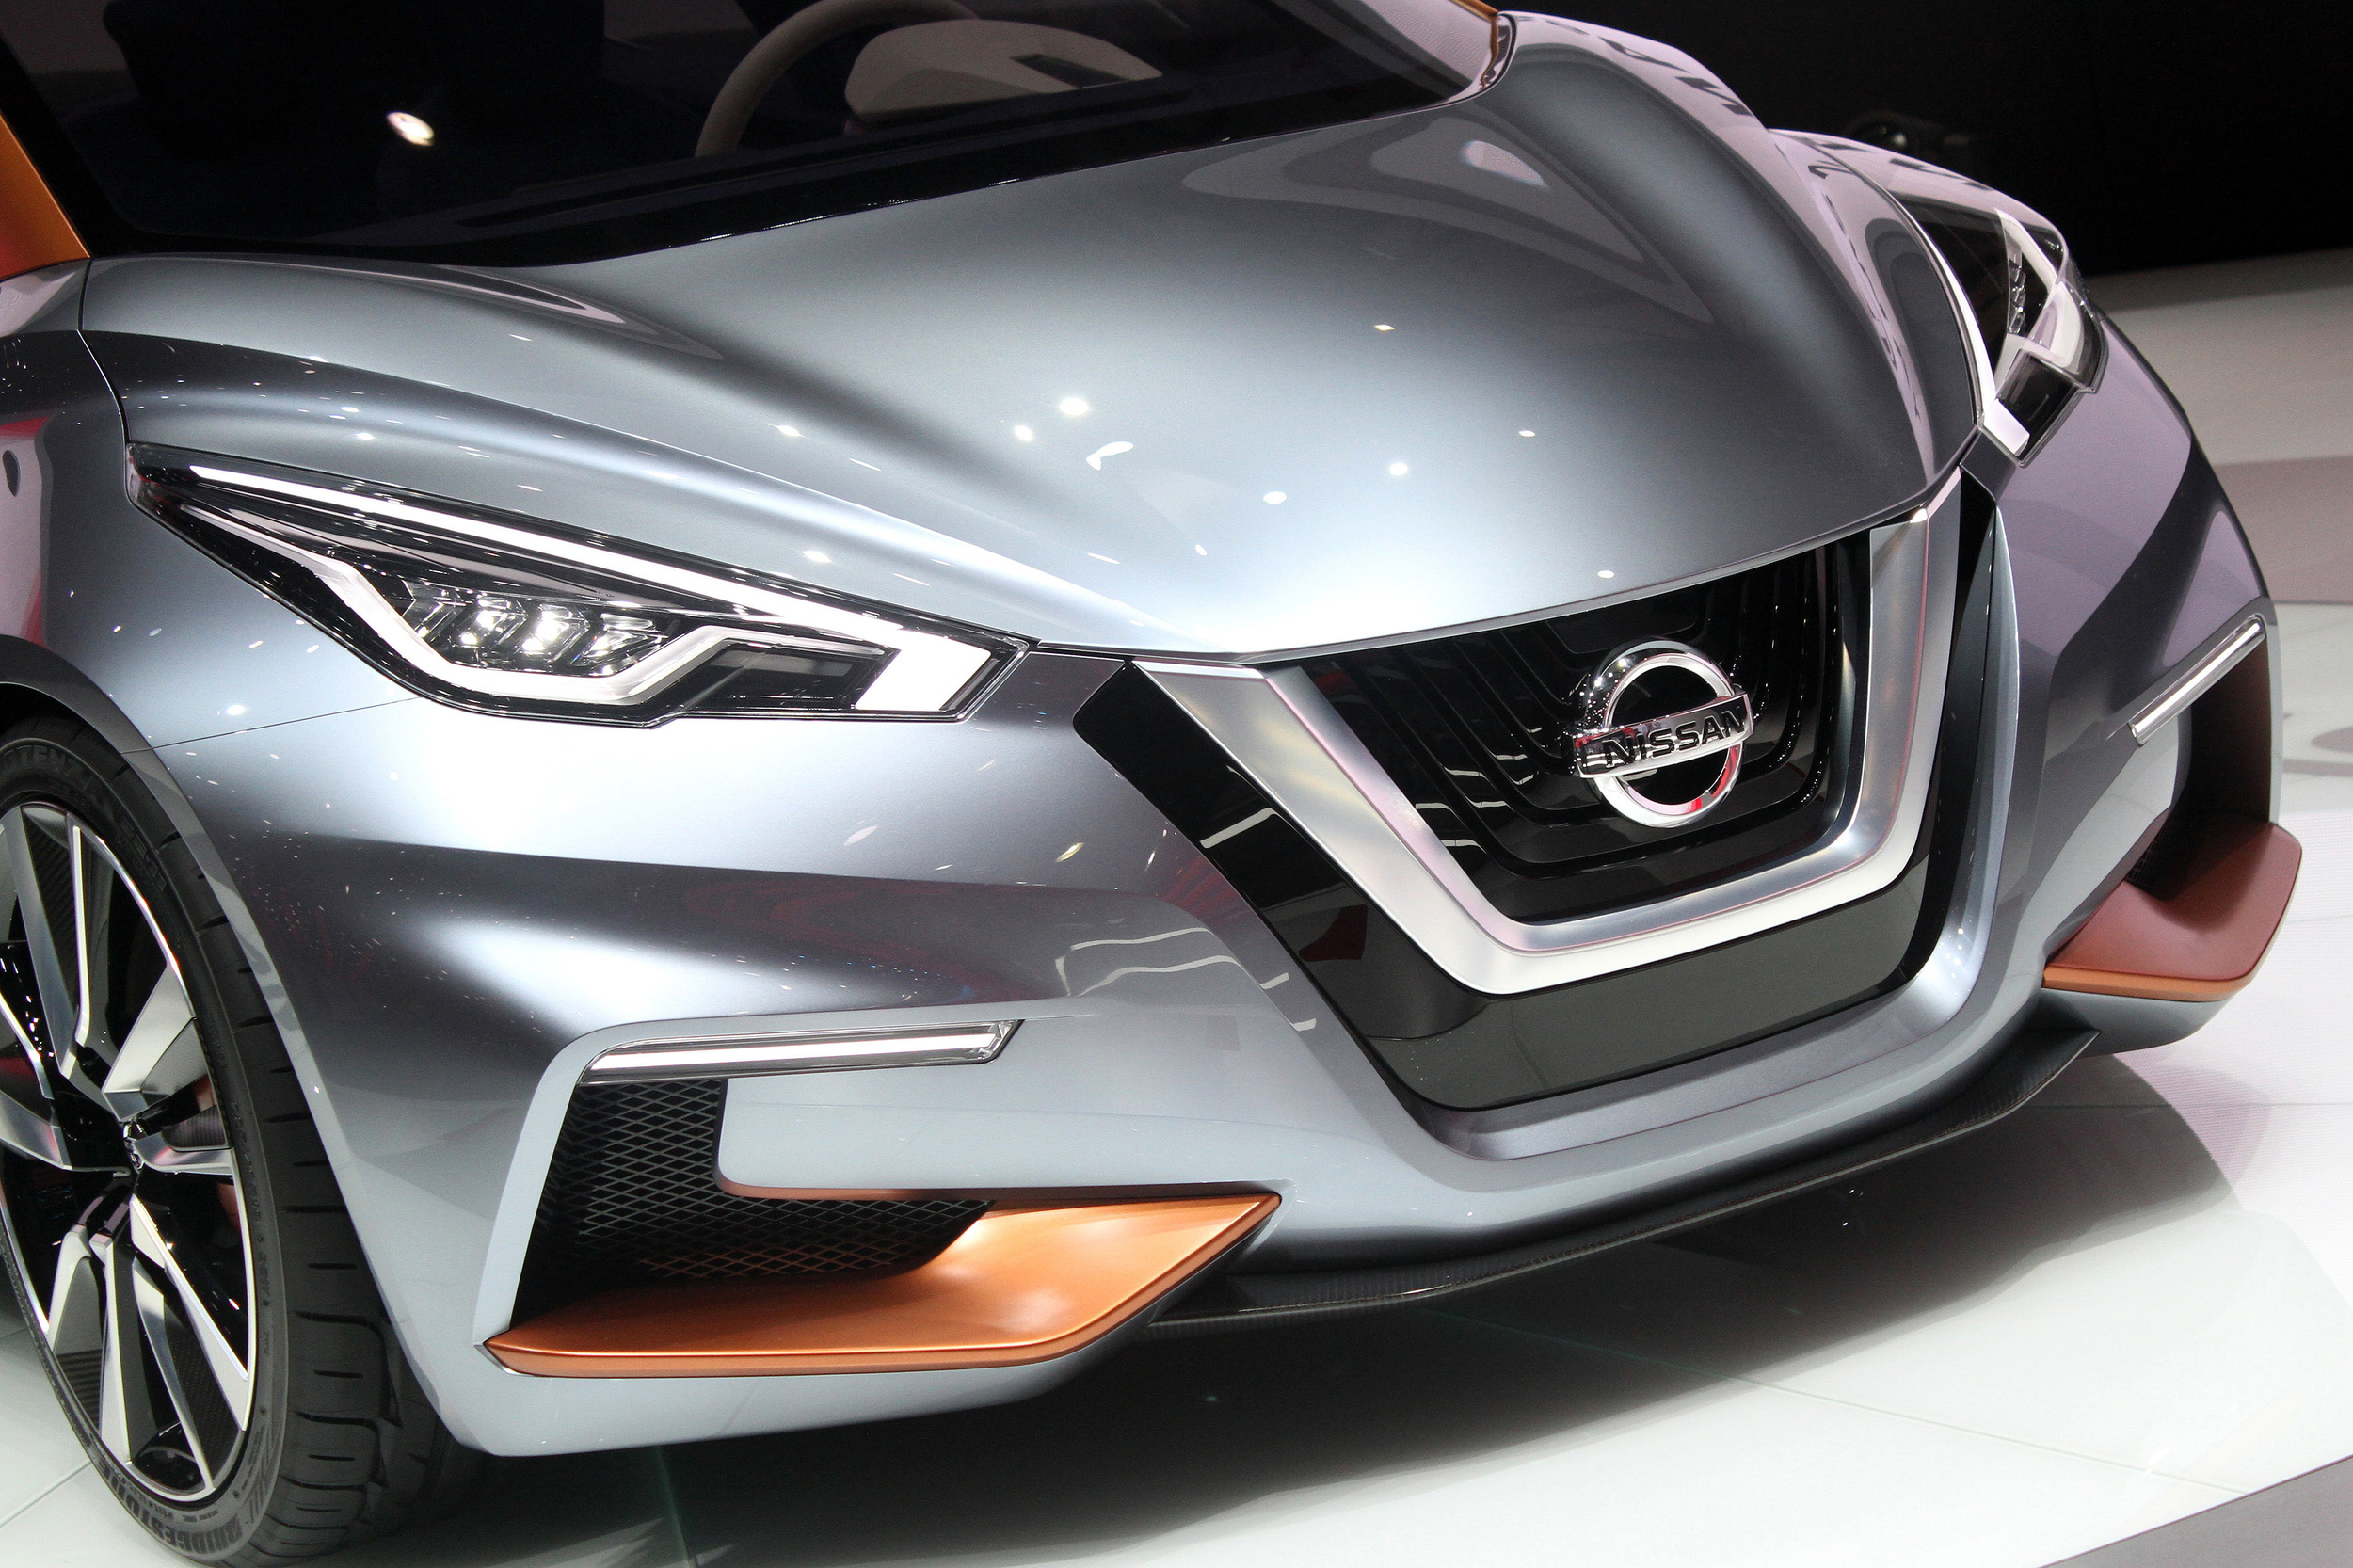 nissan-sway-concept-09-1-1